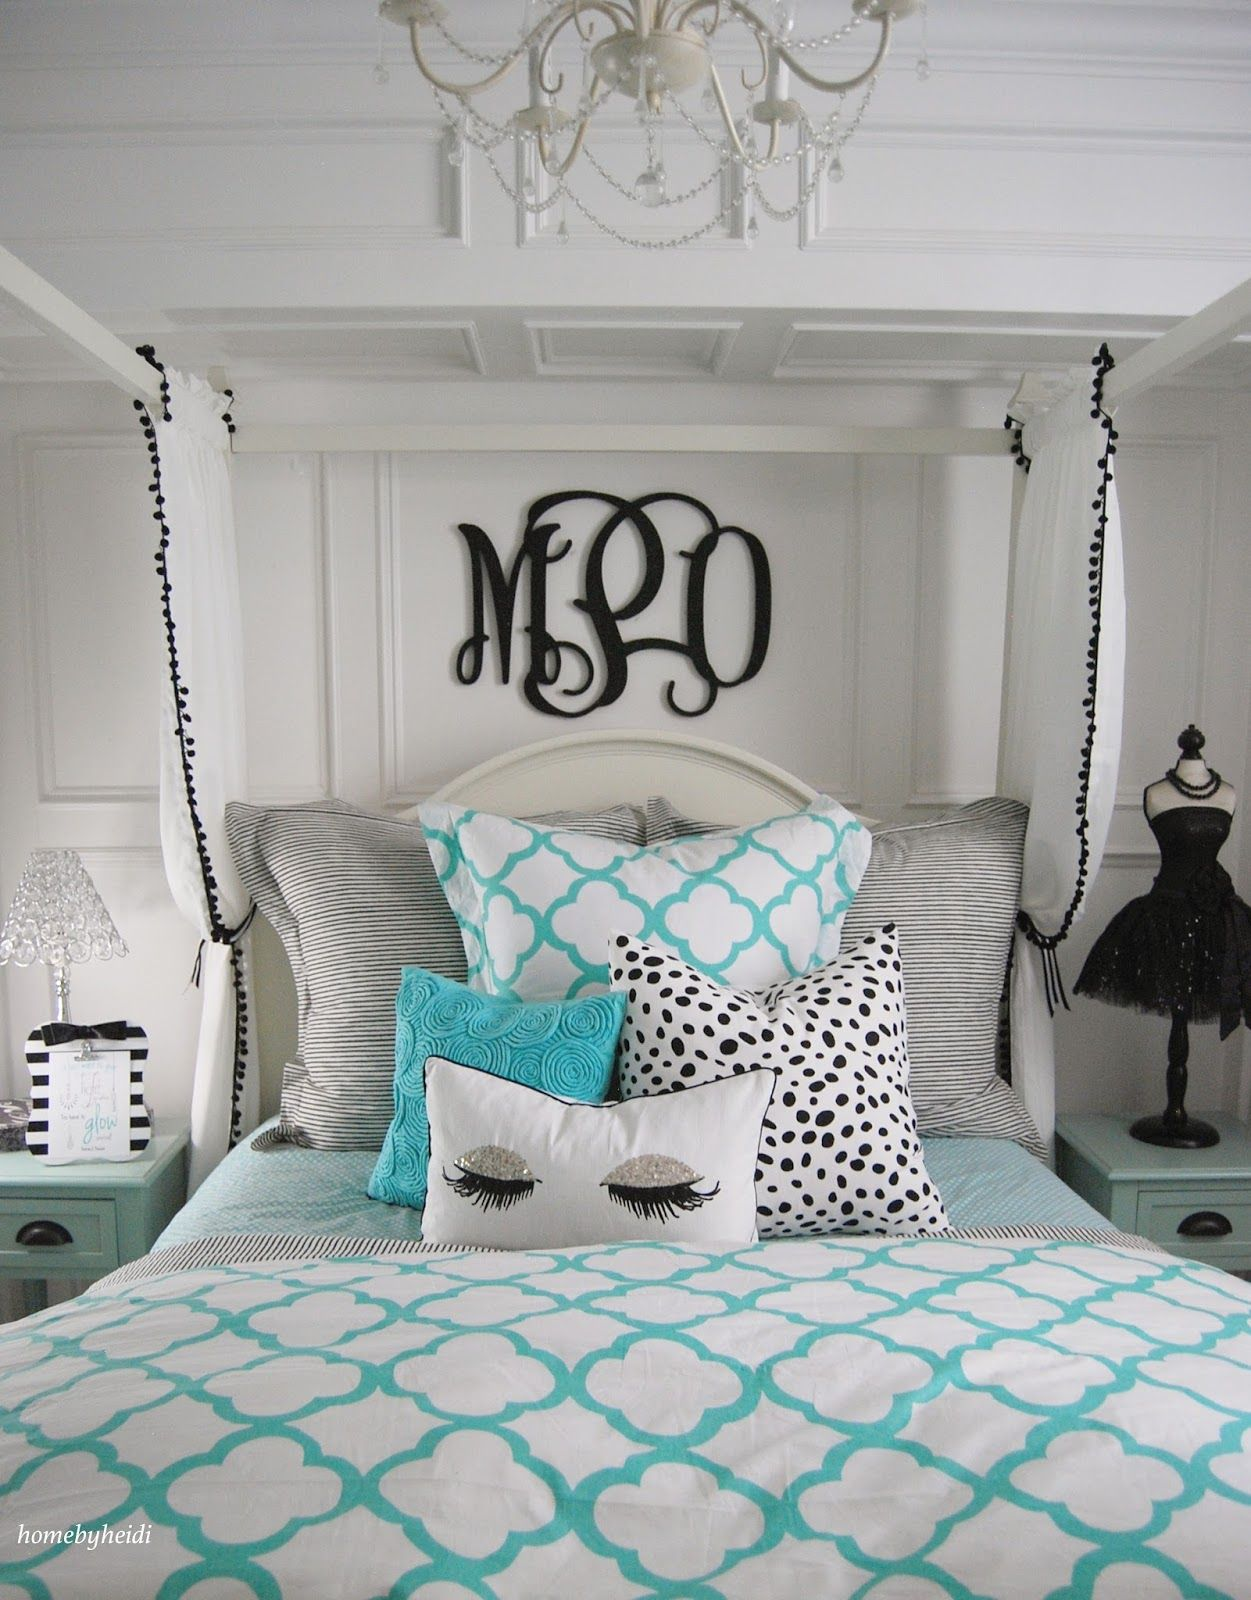 Teen Girl Room Design: What Is More Glamorous Than A Blue Box From Tiffany's